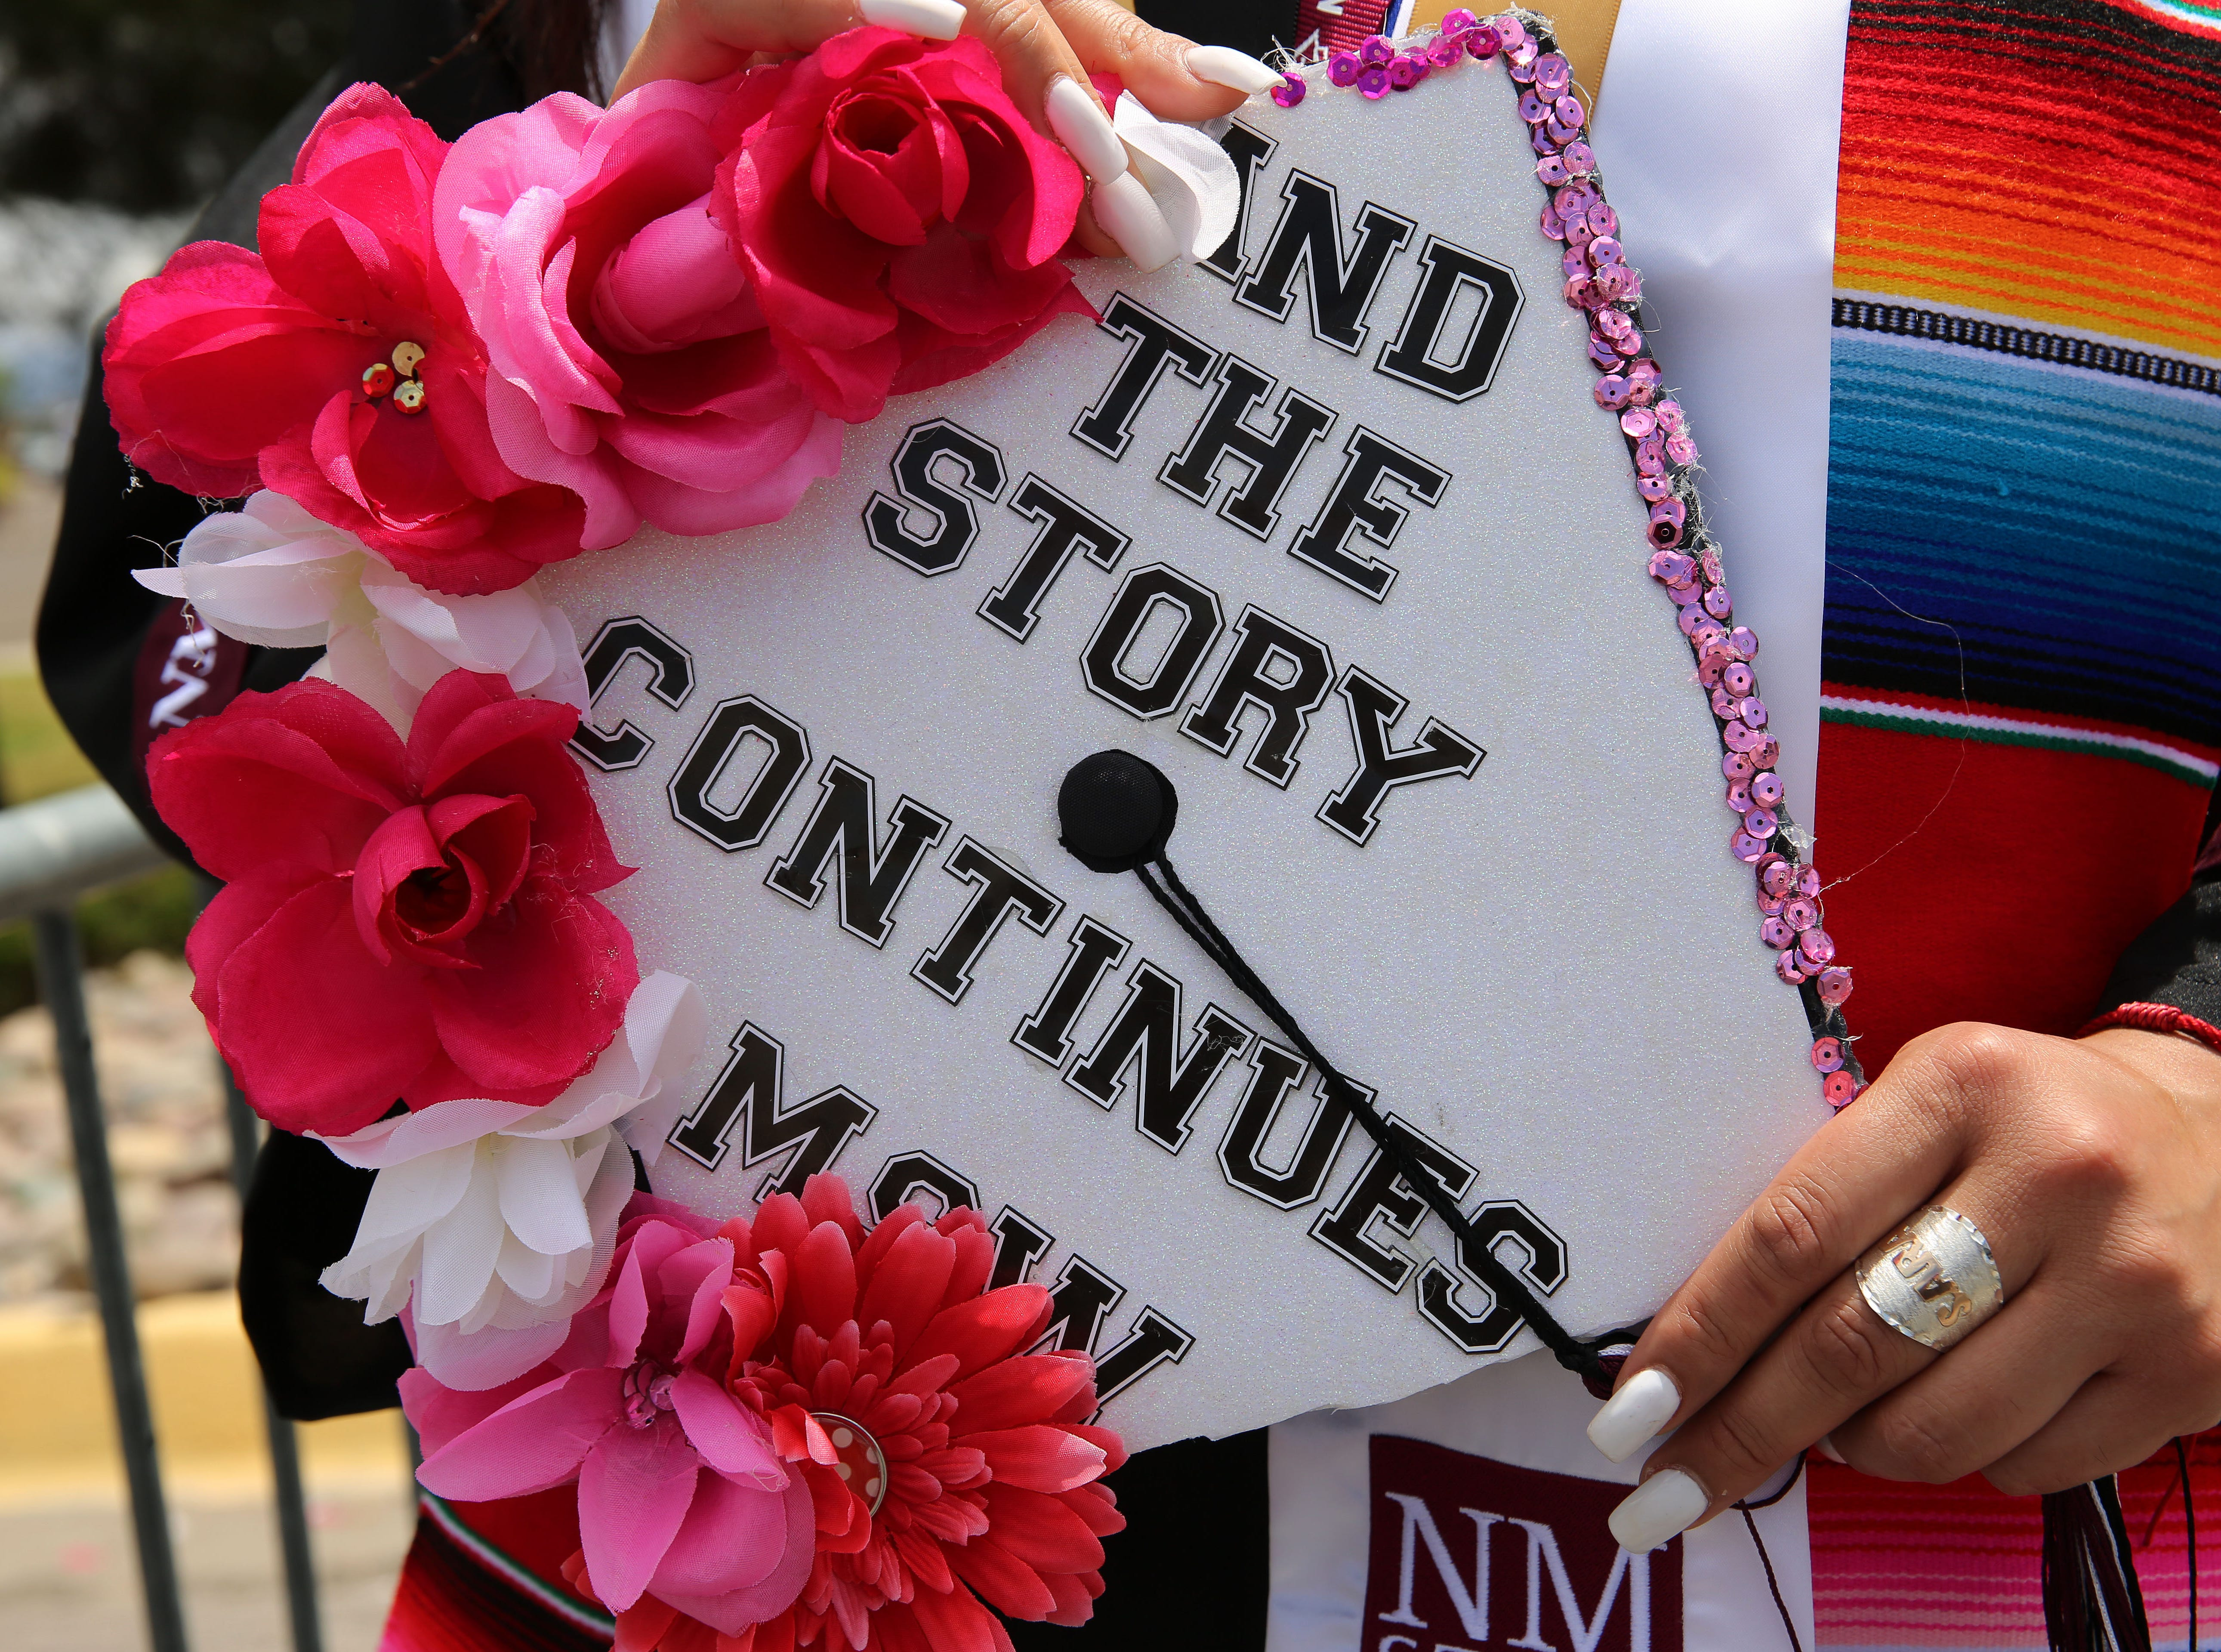 With the goal of helping others, Sarah Rodriguez earned a degree in social work, but she's not done yet. With a mortarboard expressing the sentiment, Rodriguez said she's continuing on in school, to complete her master's degree.